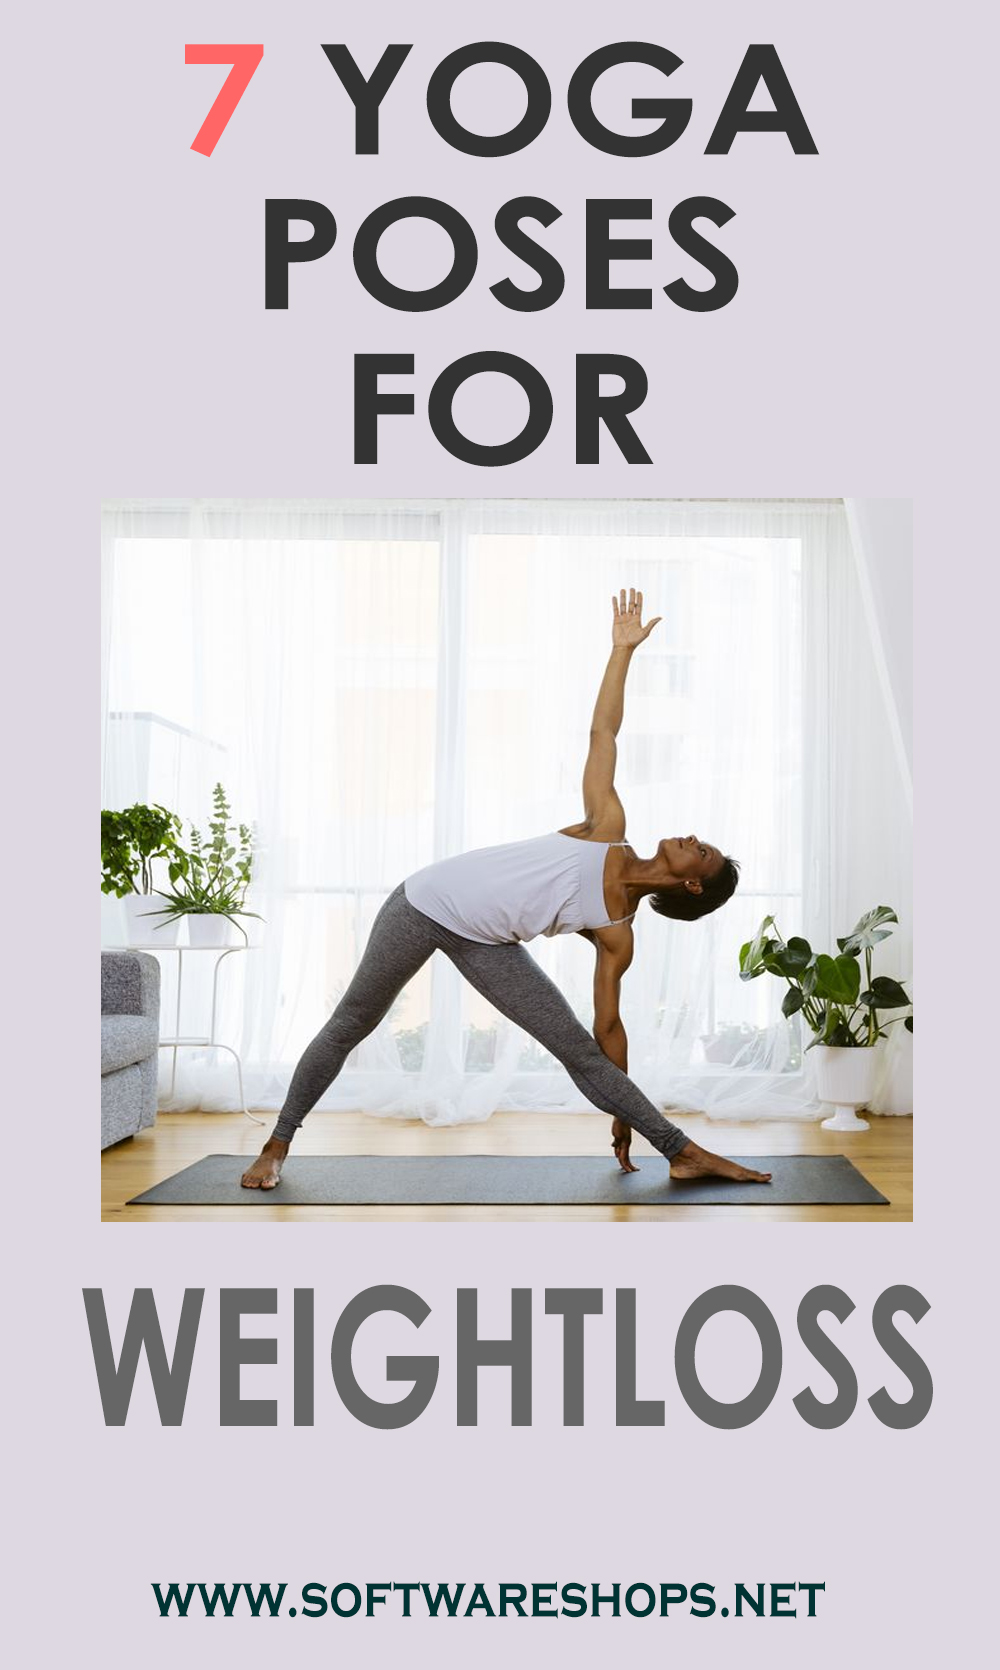 7 yoga poses to lose weight